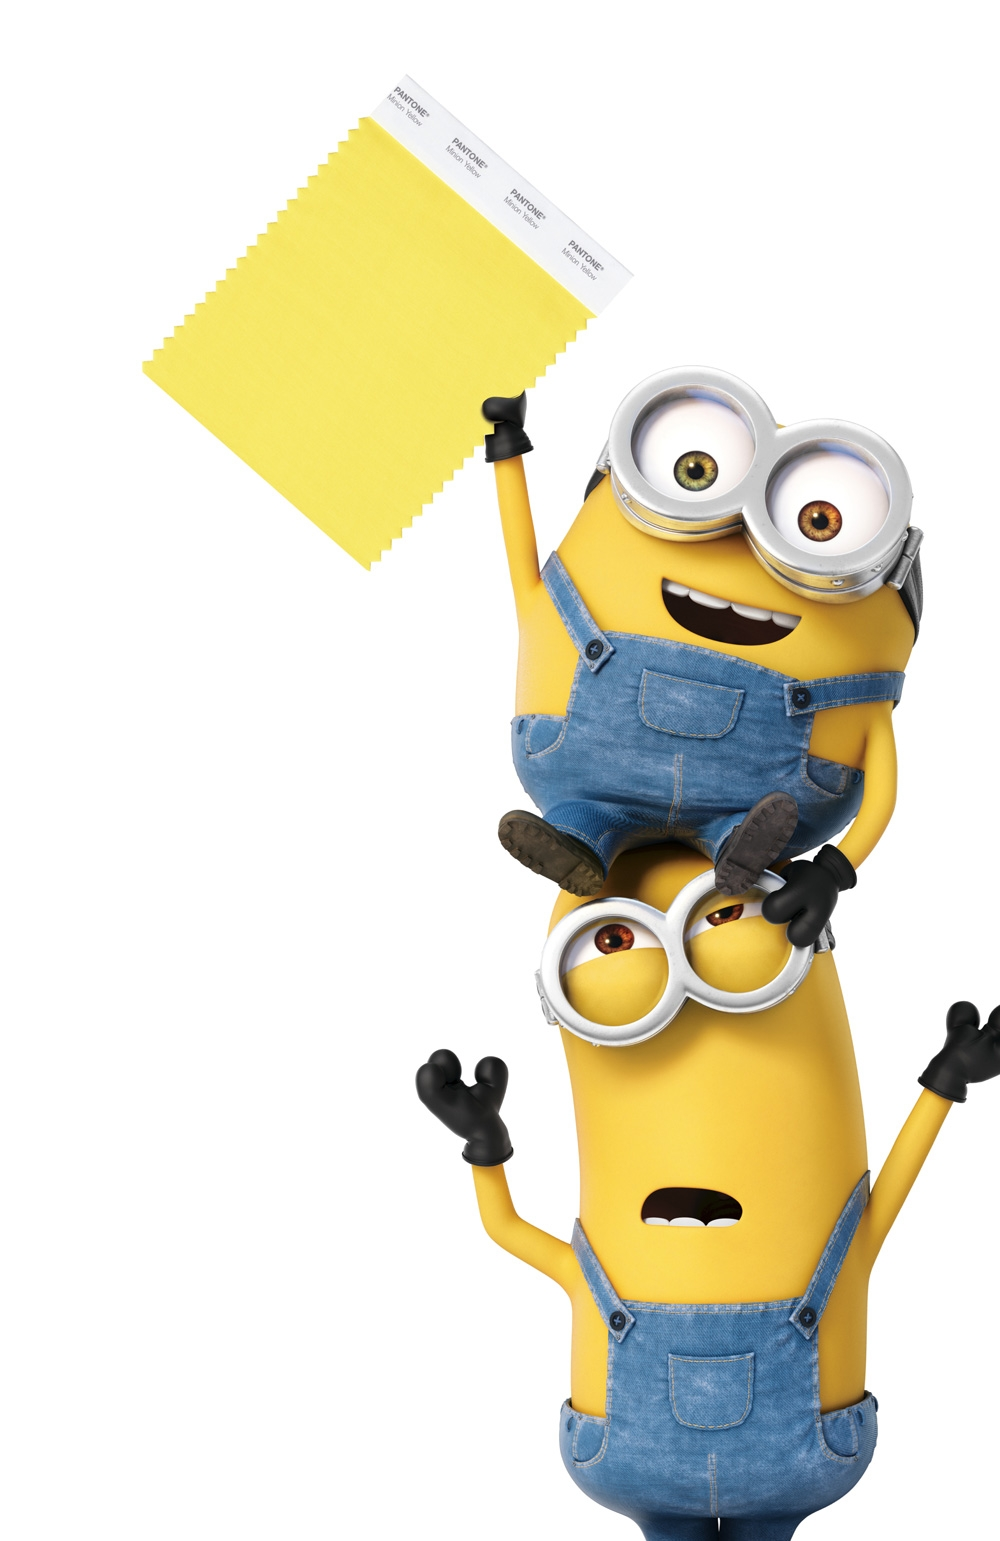 Pantone Minion Yellow Pantone S Latest Colour Is Rather